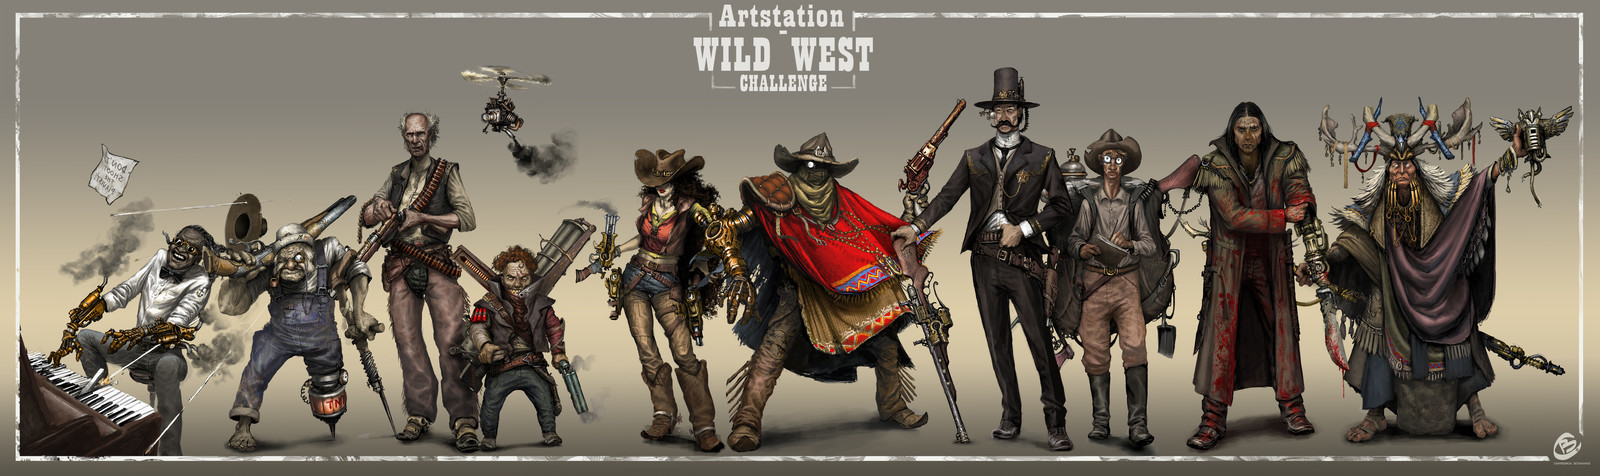 Wild West Challenge - character submission